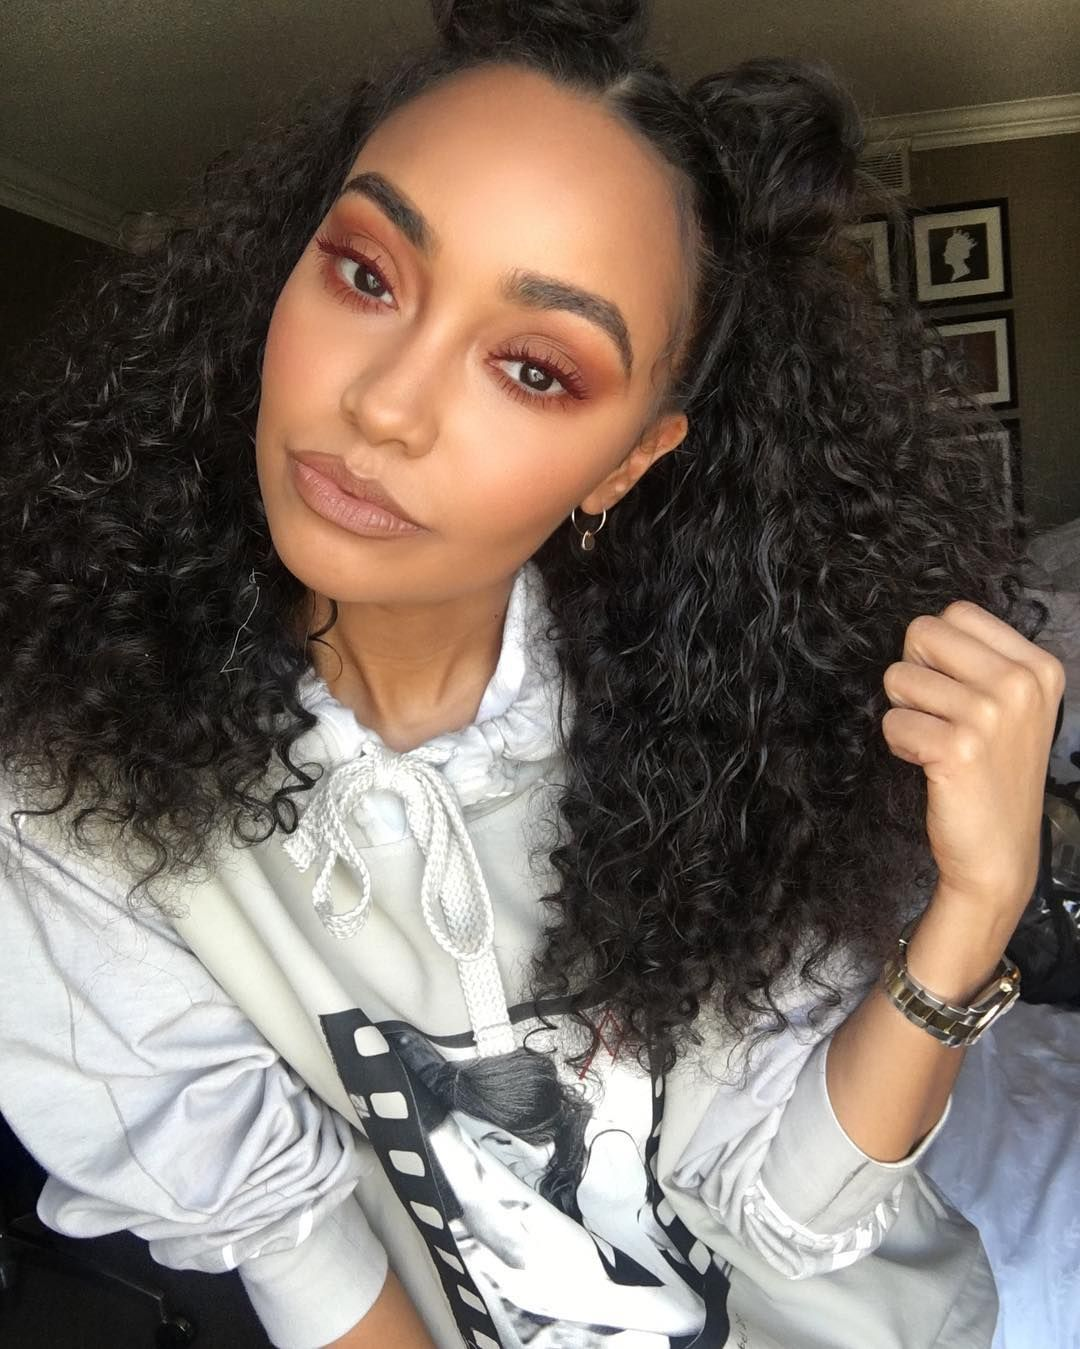 Leighanne pinnock is just so pretty and cute aesthetic